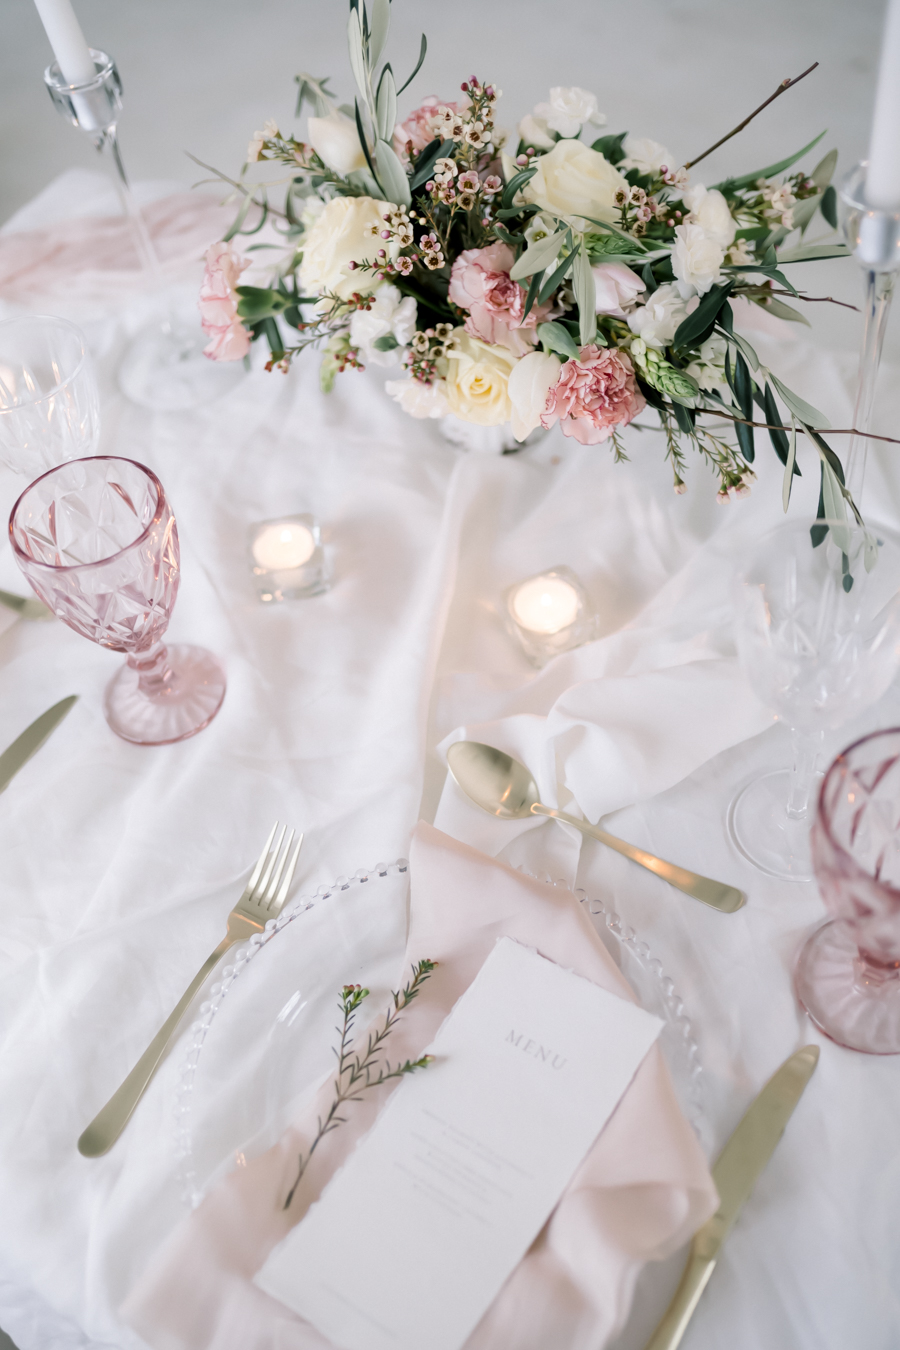 Spring blossom wedding style inspiration and ideas with Chloe Ely Photography at Barton Court (35)